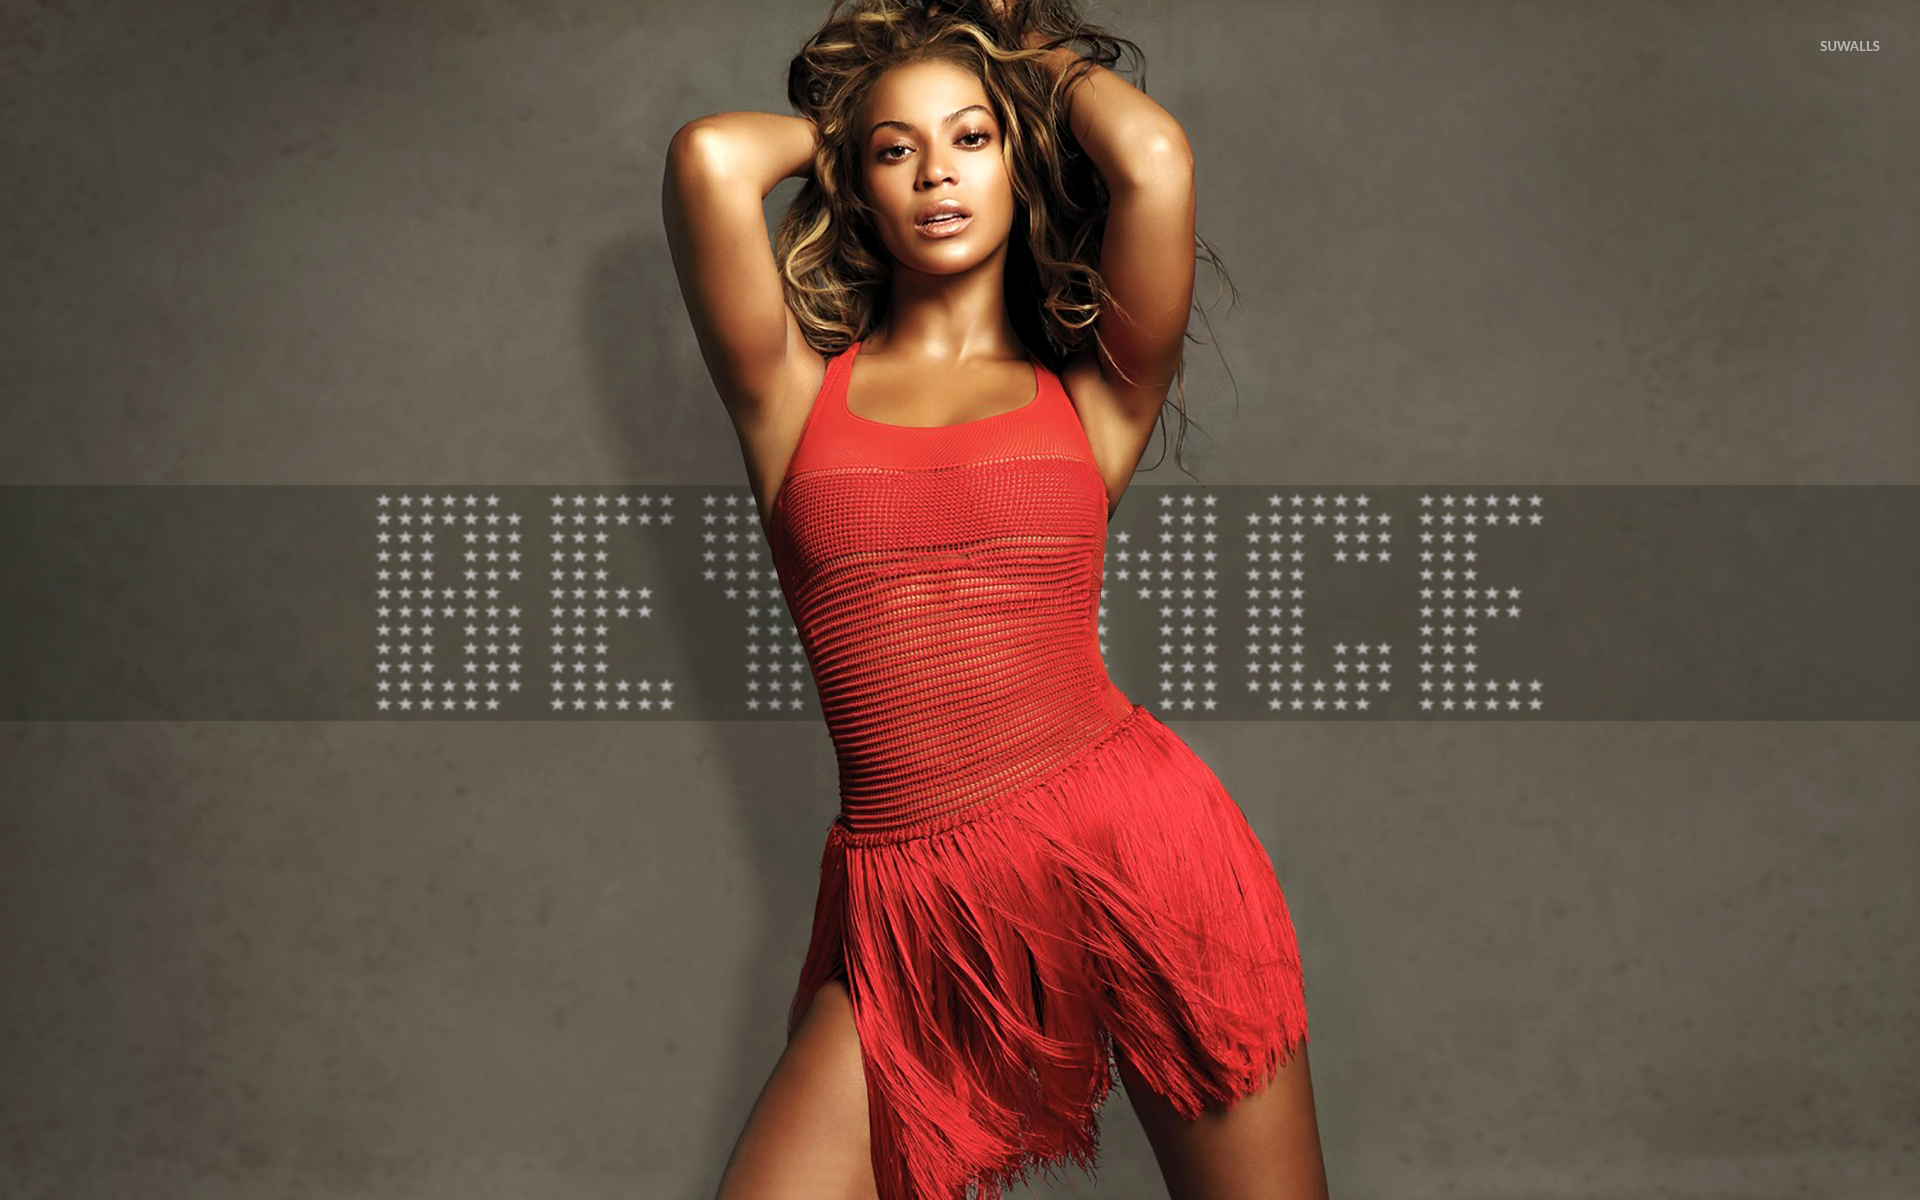 Beyonce in a red dress and with both hands in her hair wallpaper ...